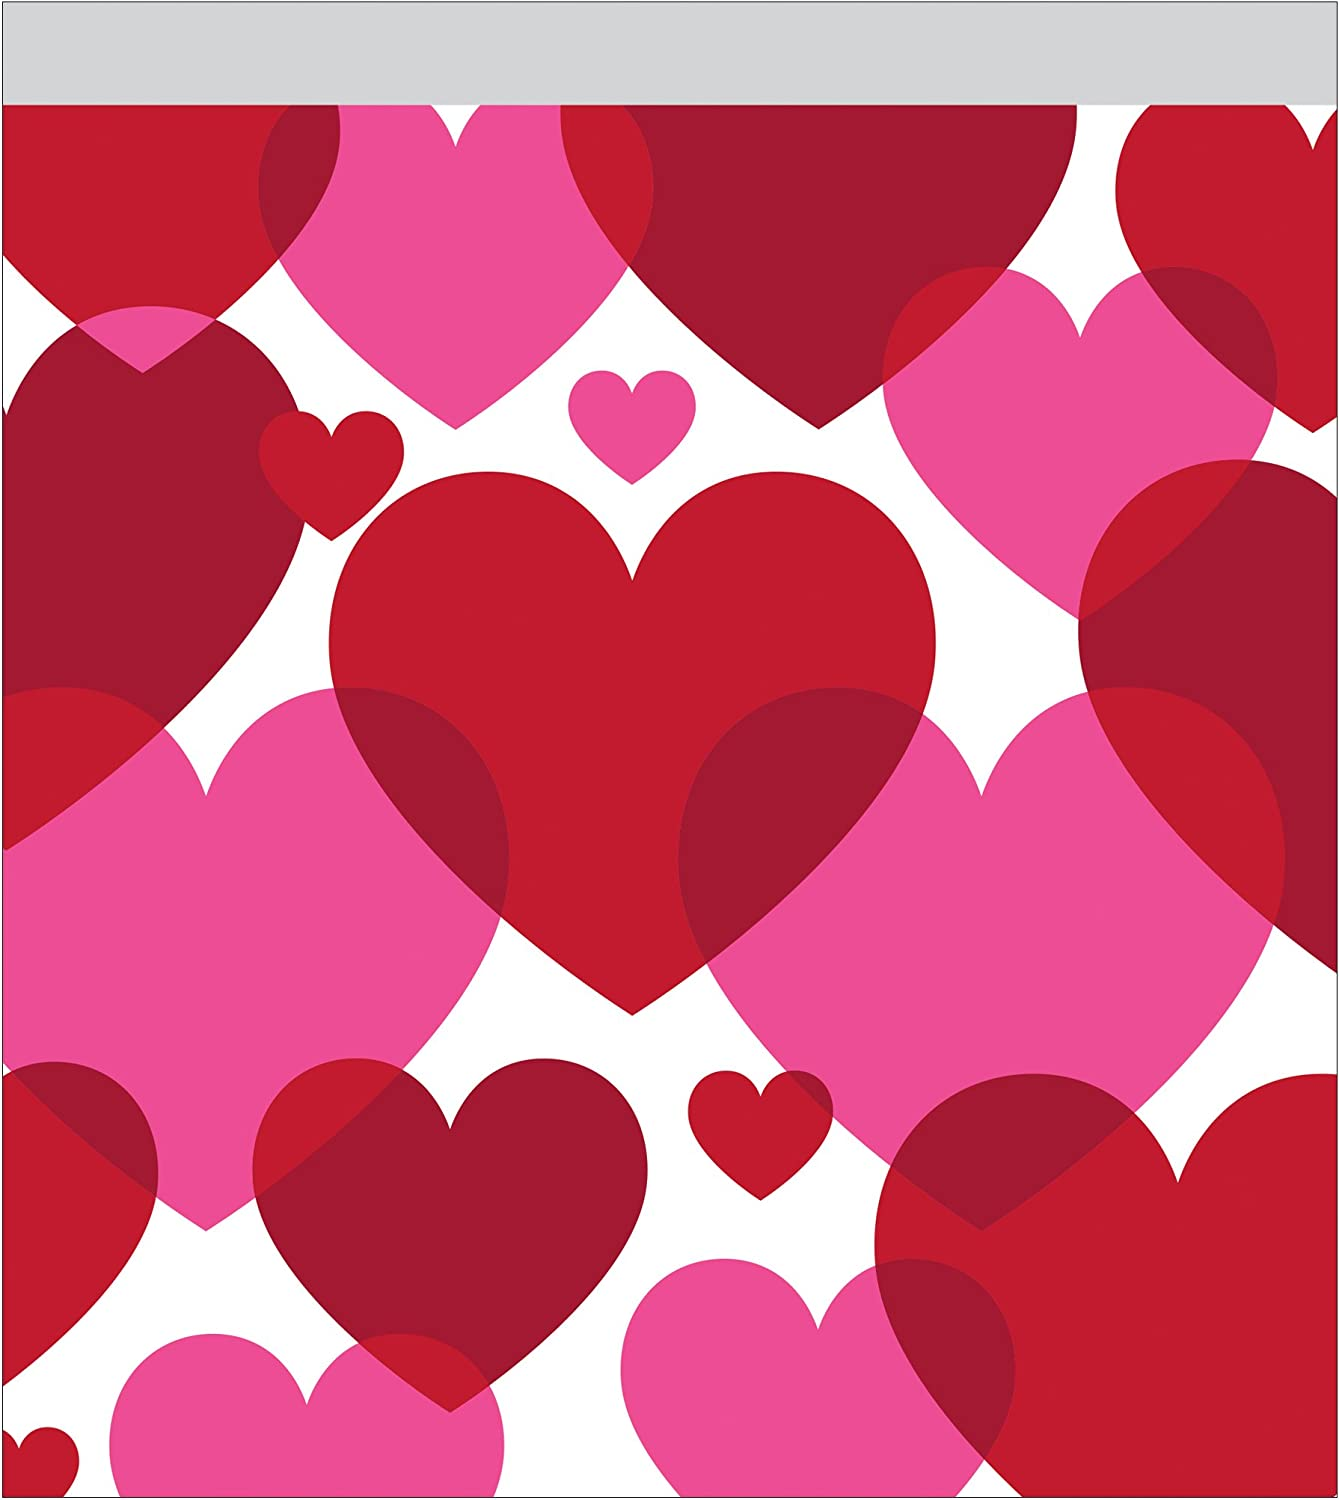 Creative Congreening 12 Count Cello Sandwich Bag, Red and Pink Hearts